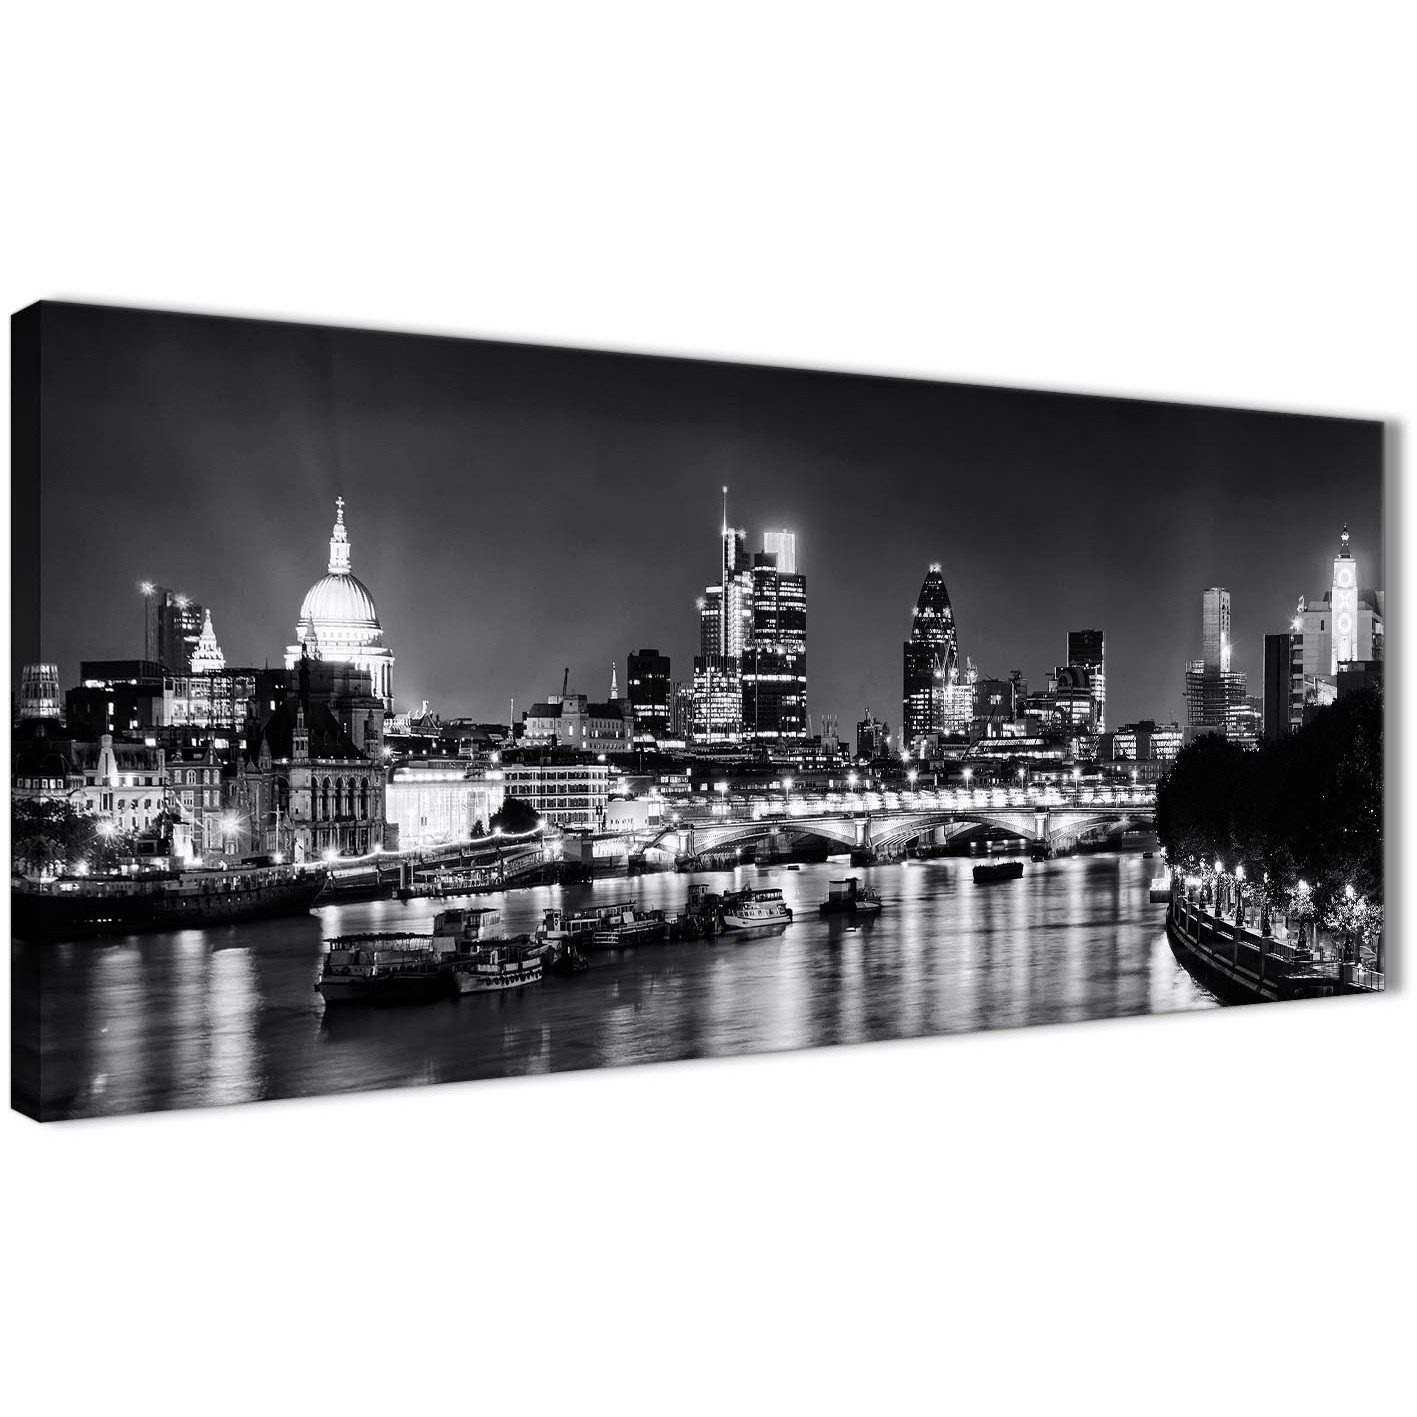 Panoramic River Thames Skyline Of London Canvas Wall Art   Landscape   1430  Black White Grey Display Gallery Item 1 ...